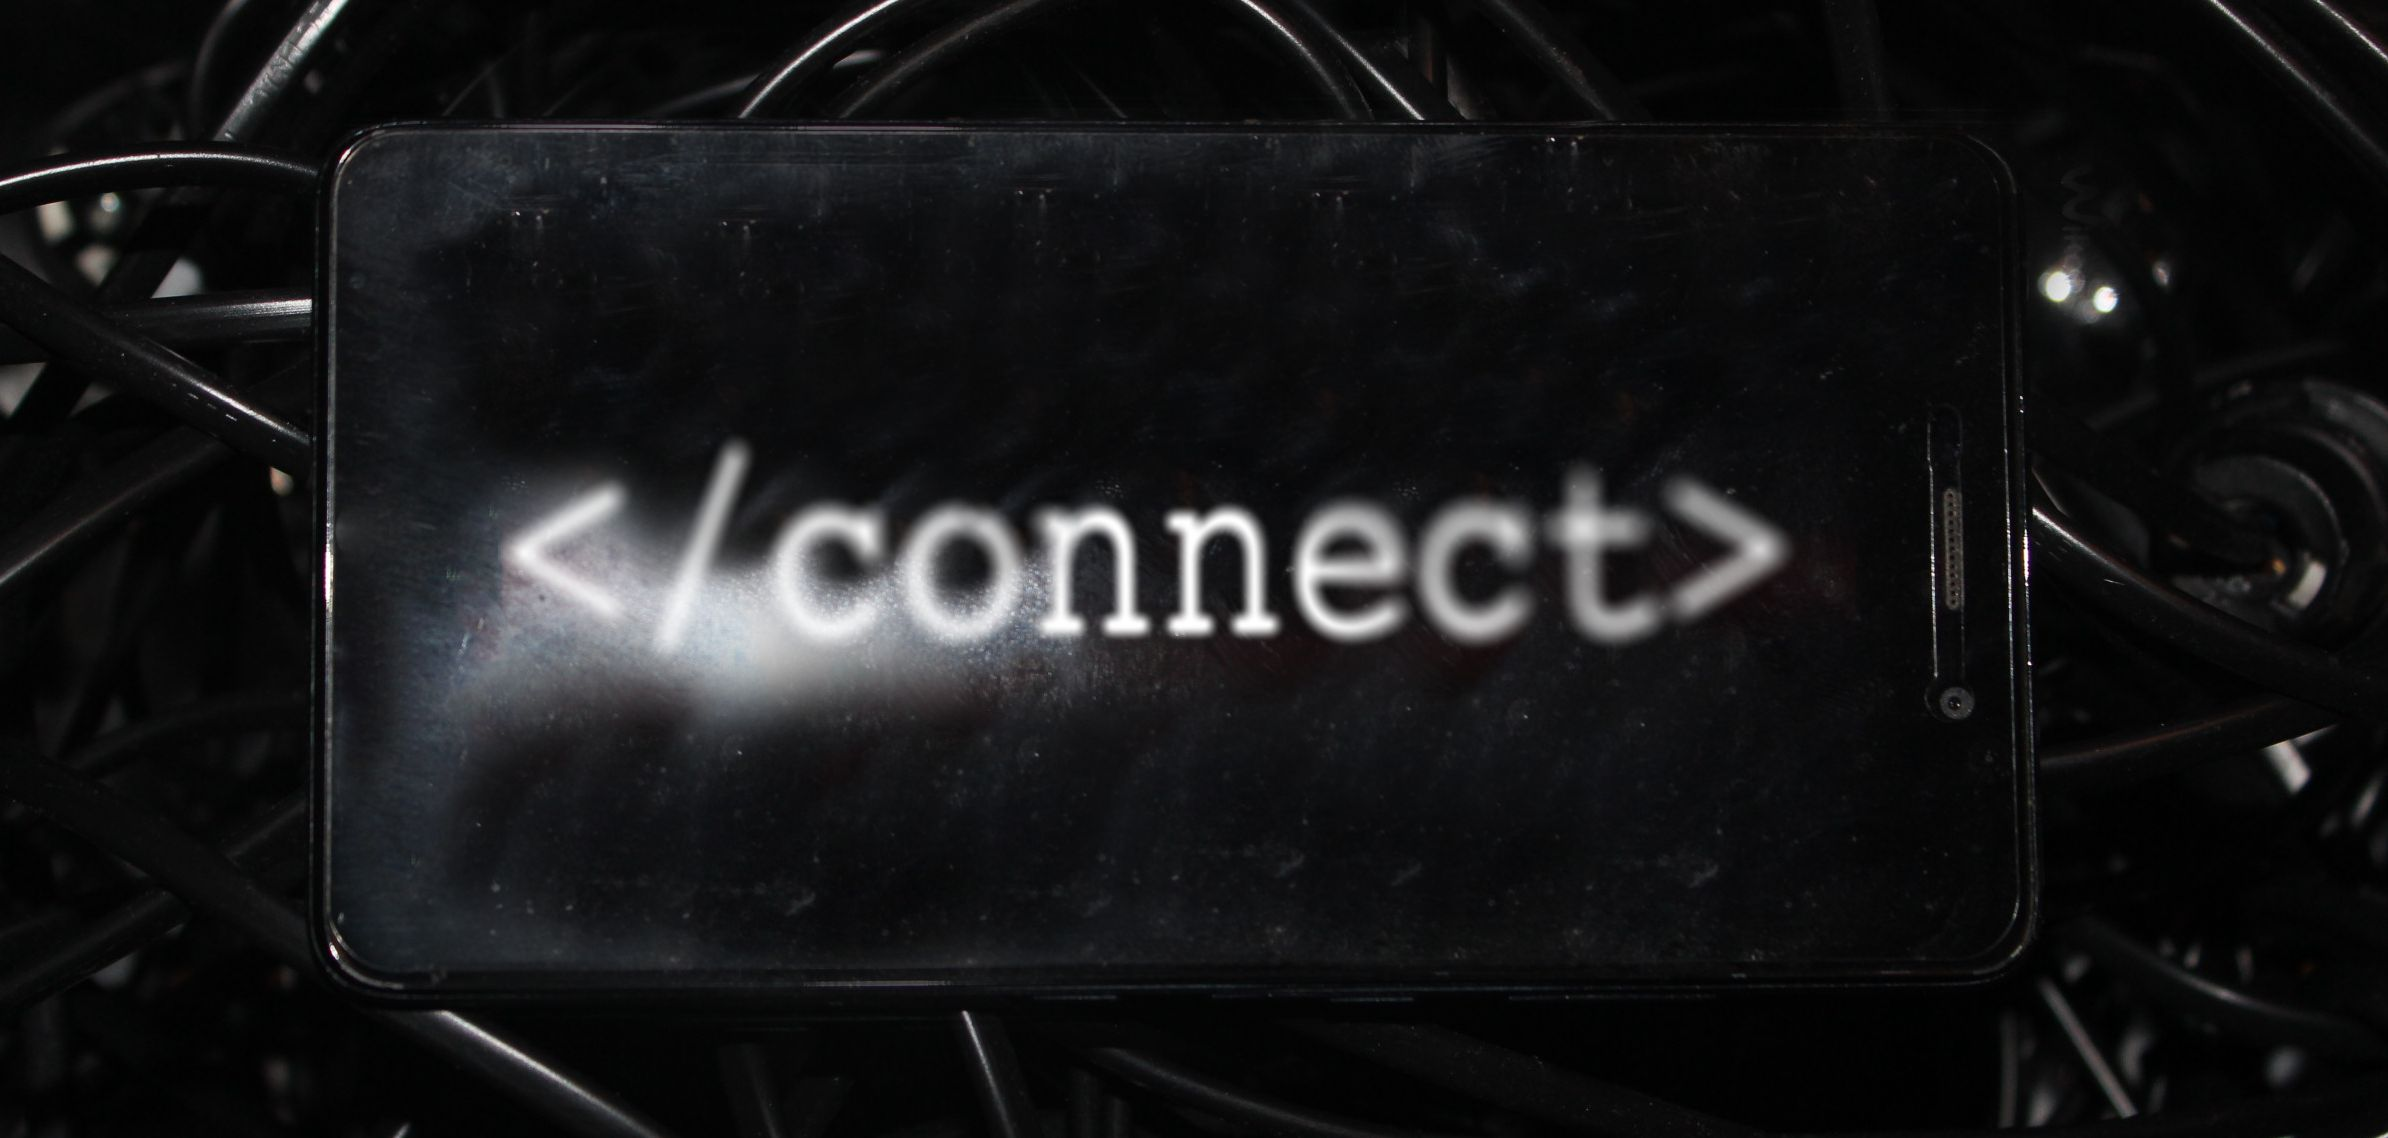 connect2